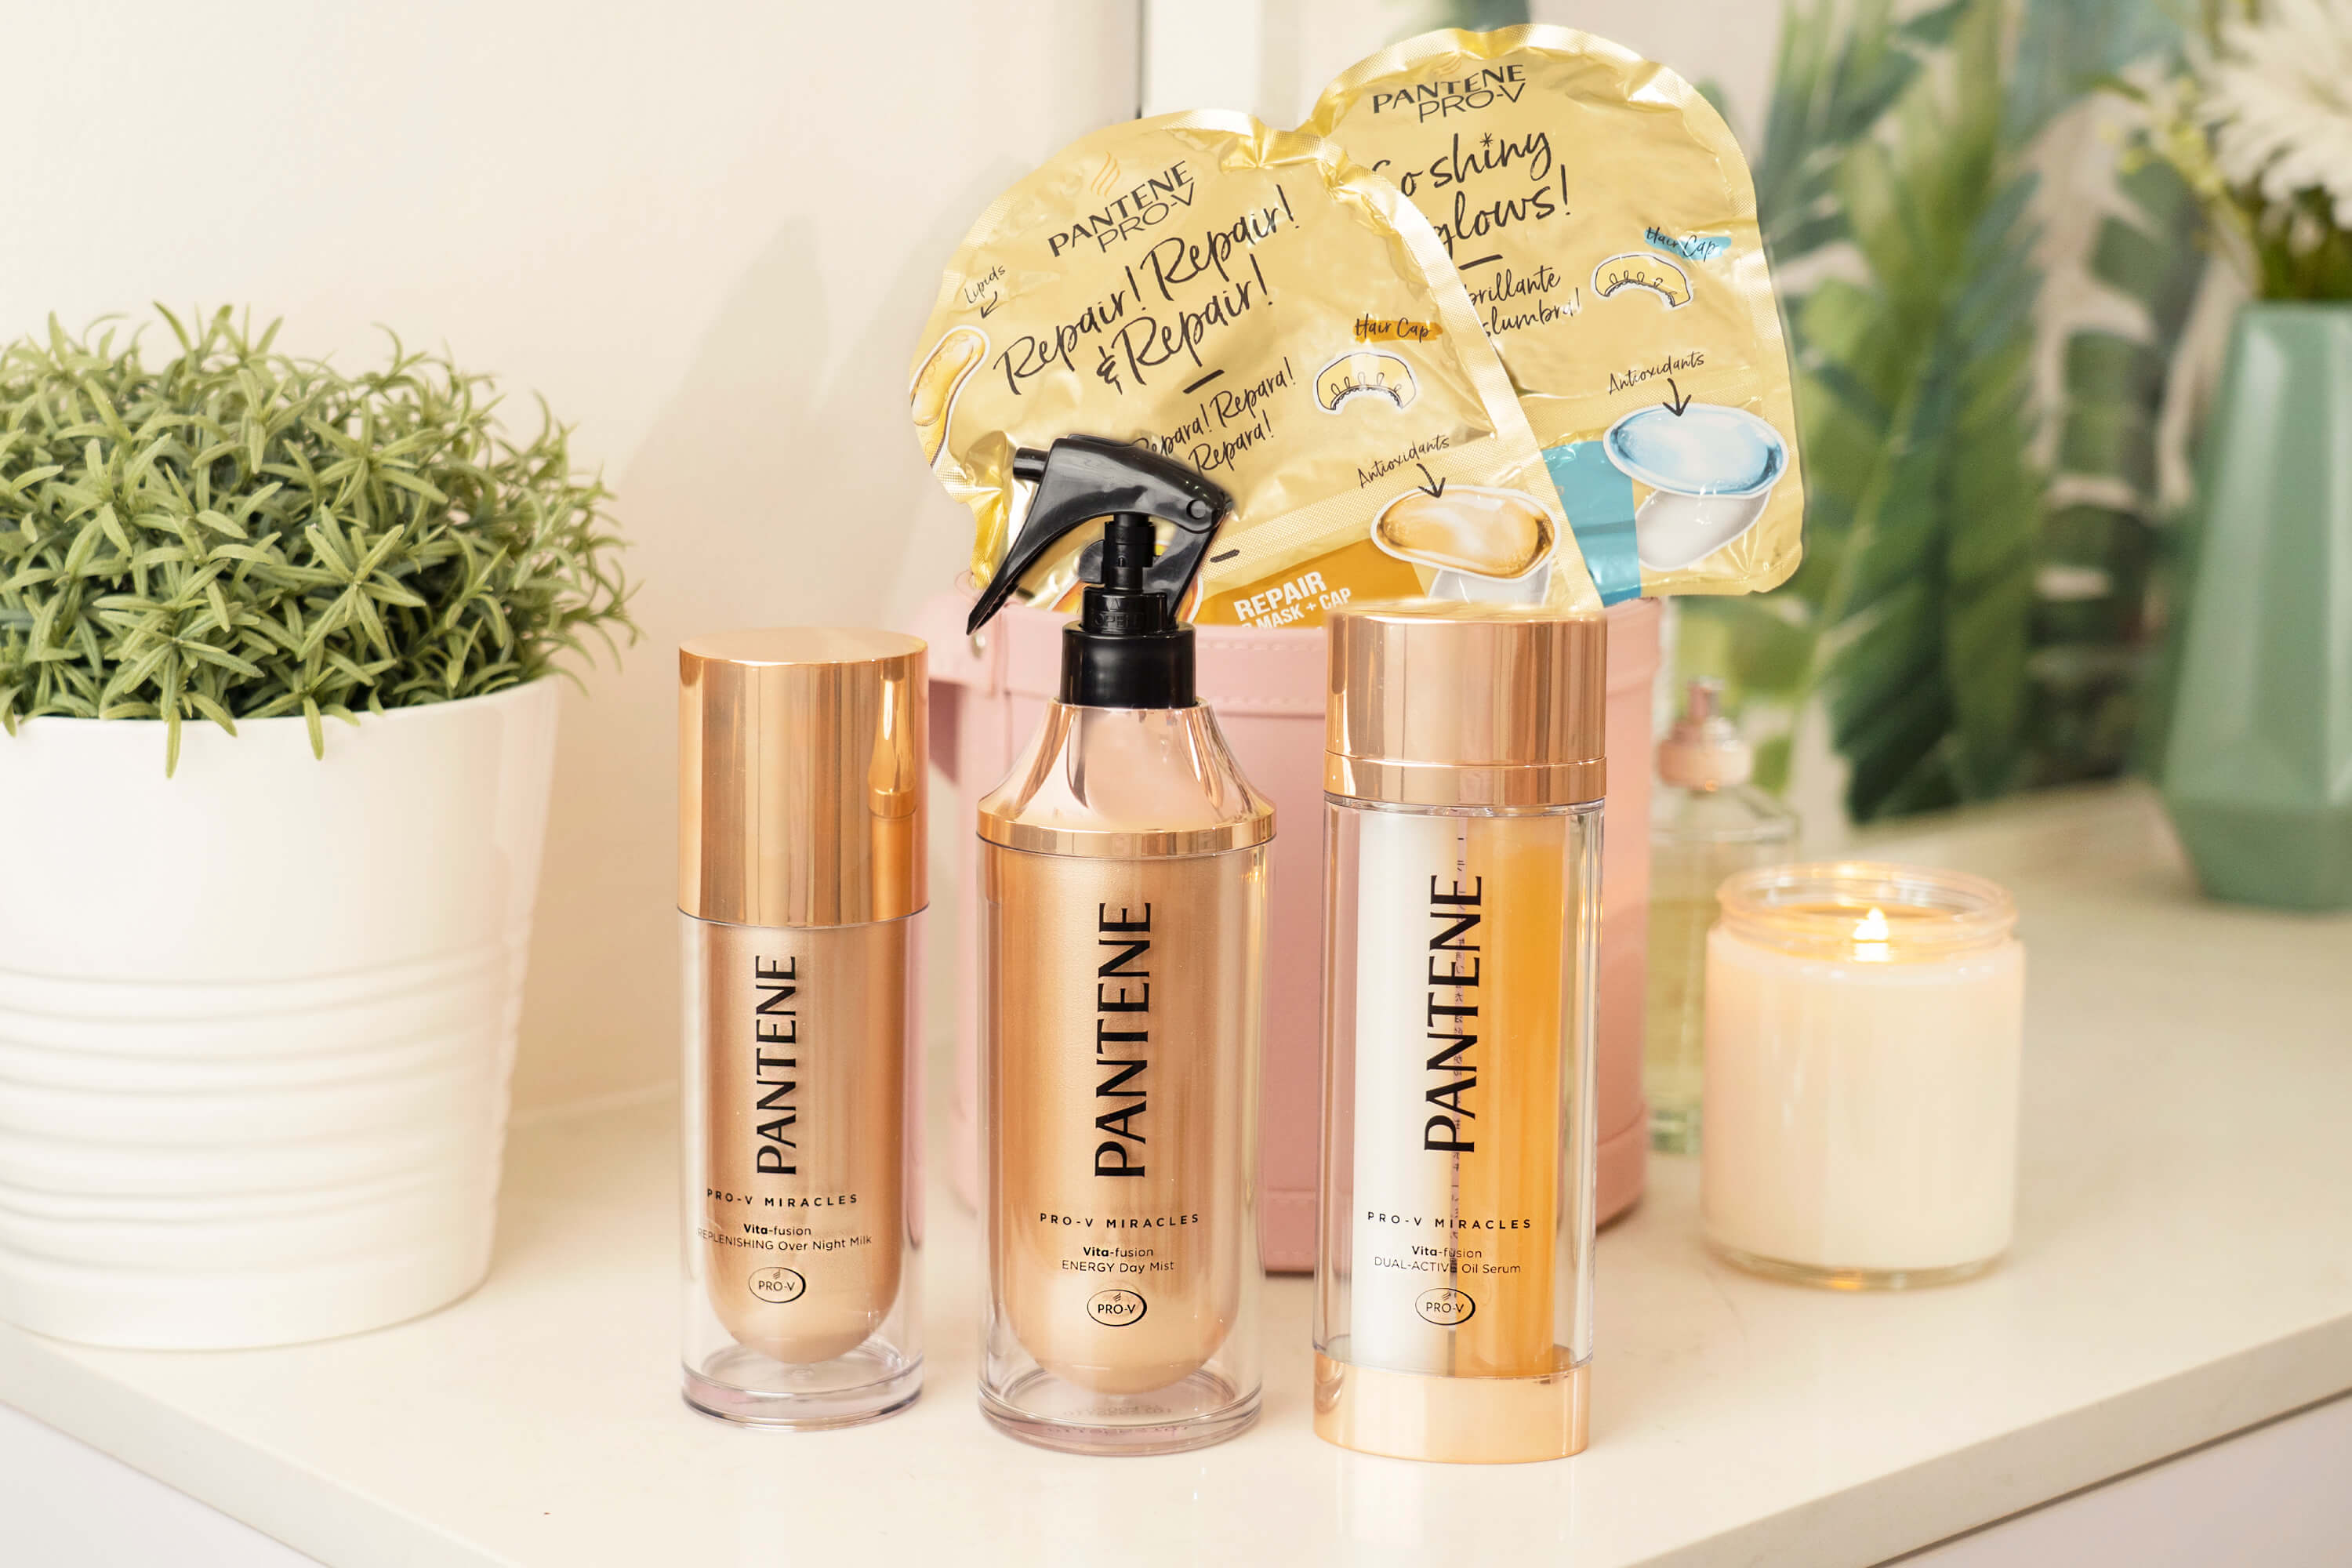 Pantene Miracles Hair Treatment range